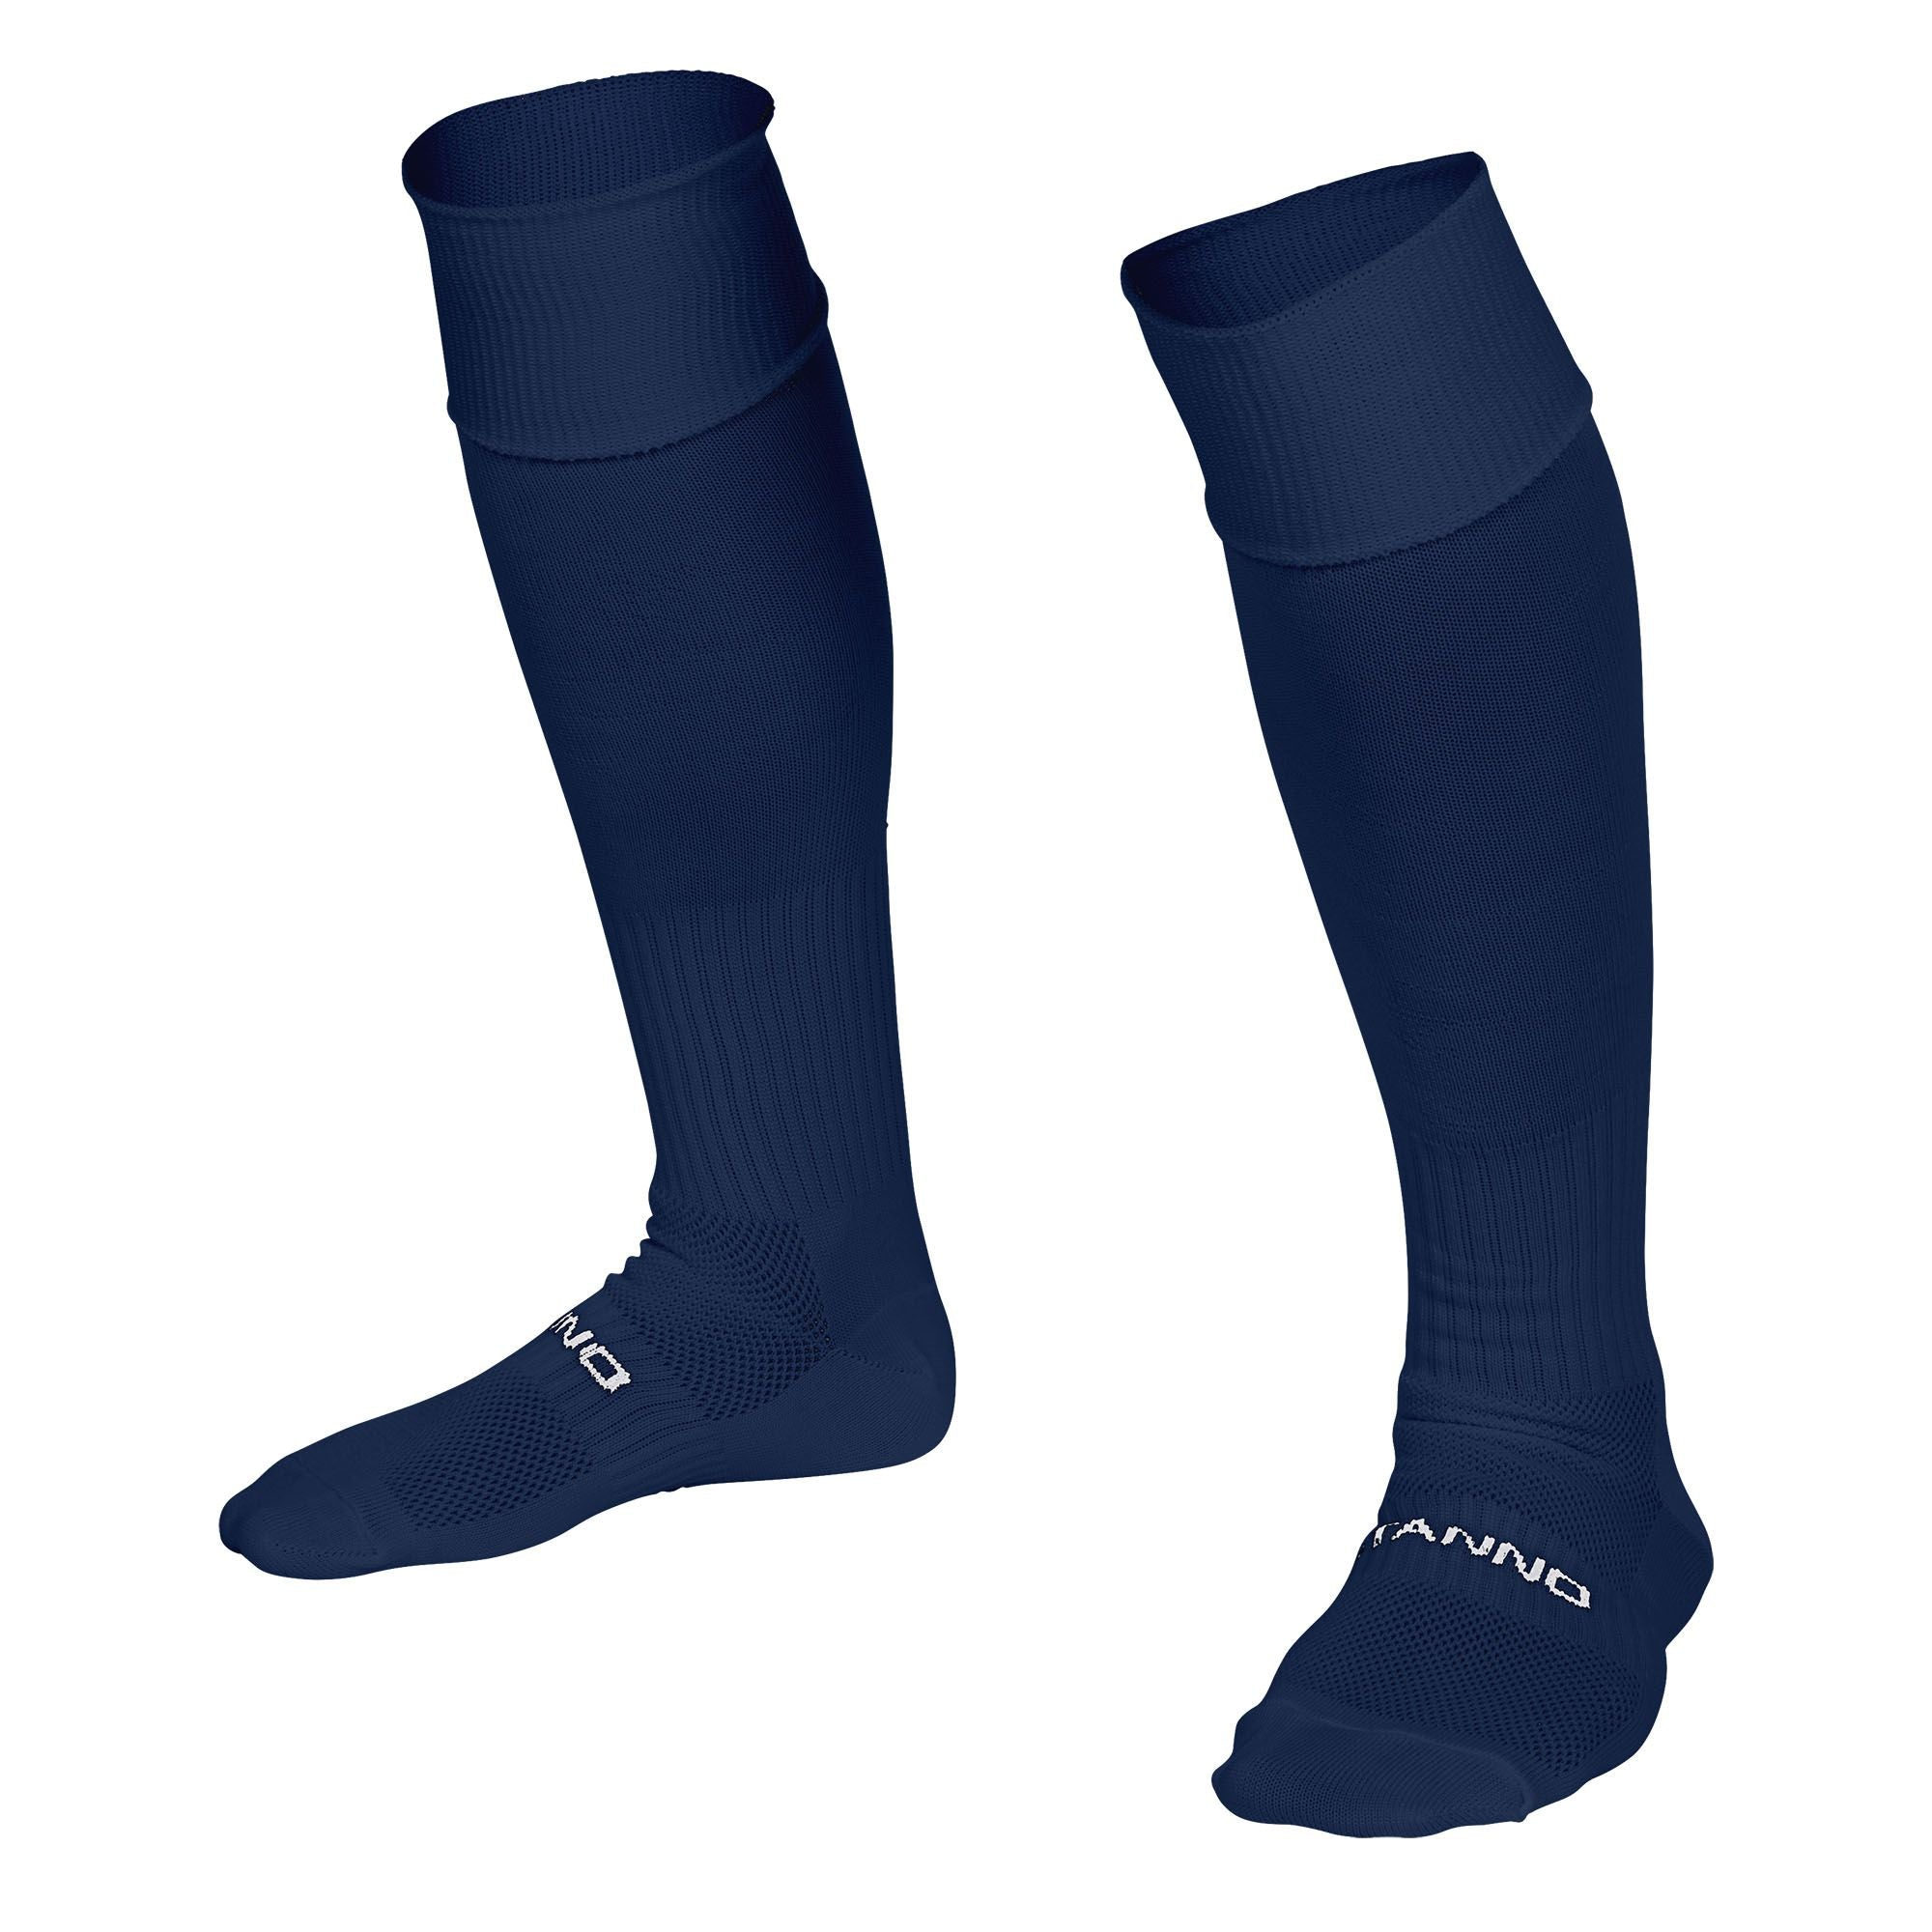 Stanno Park sock in navy with Stanno text across the top of the foot.